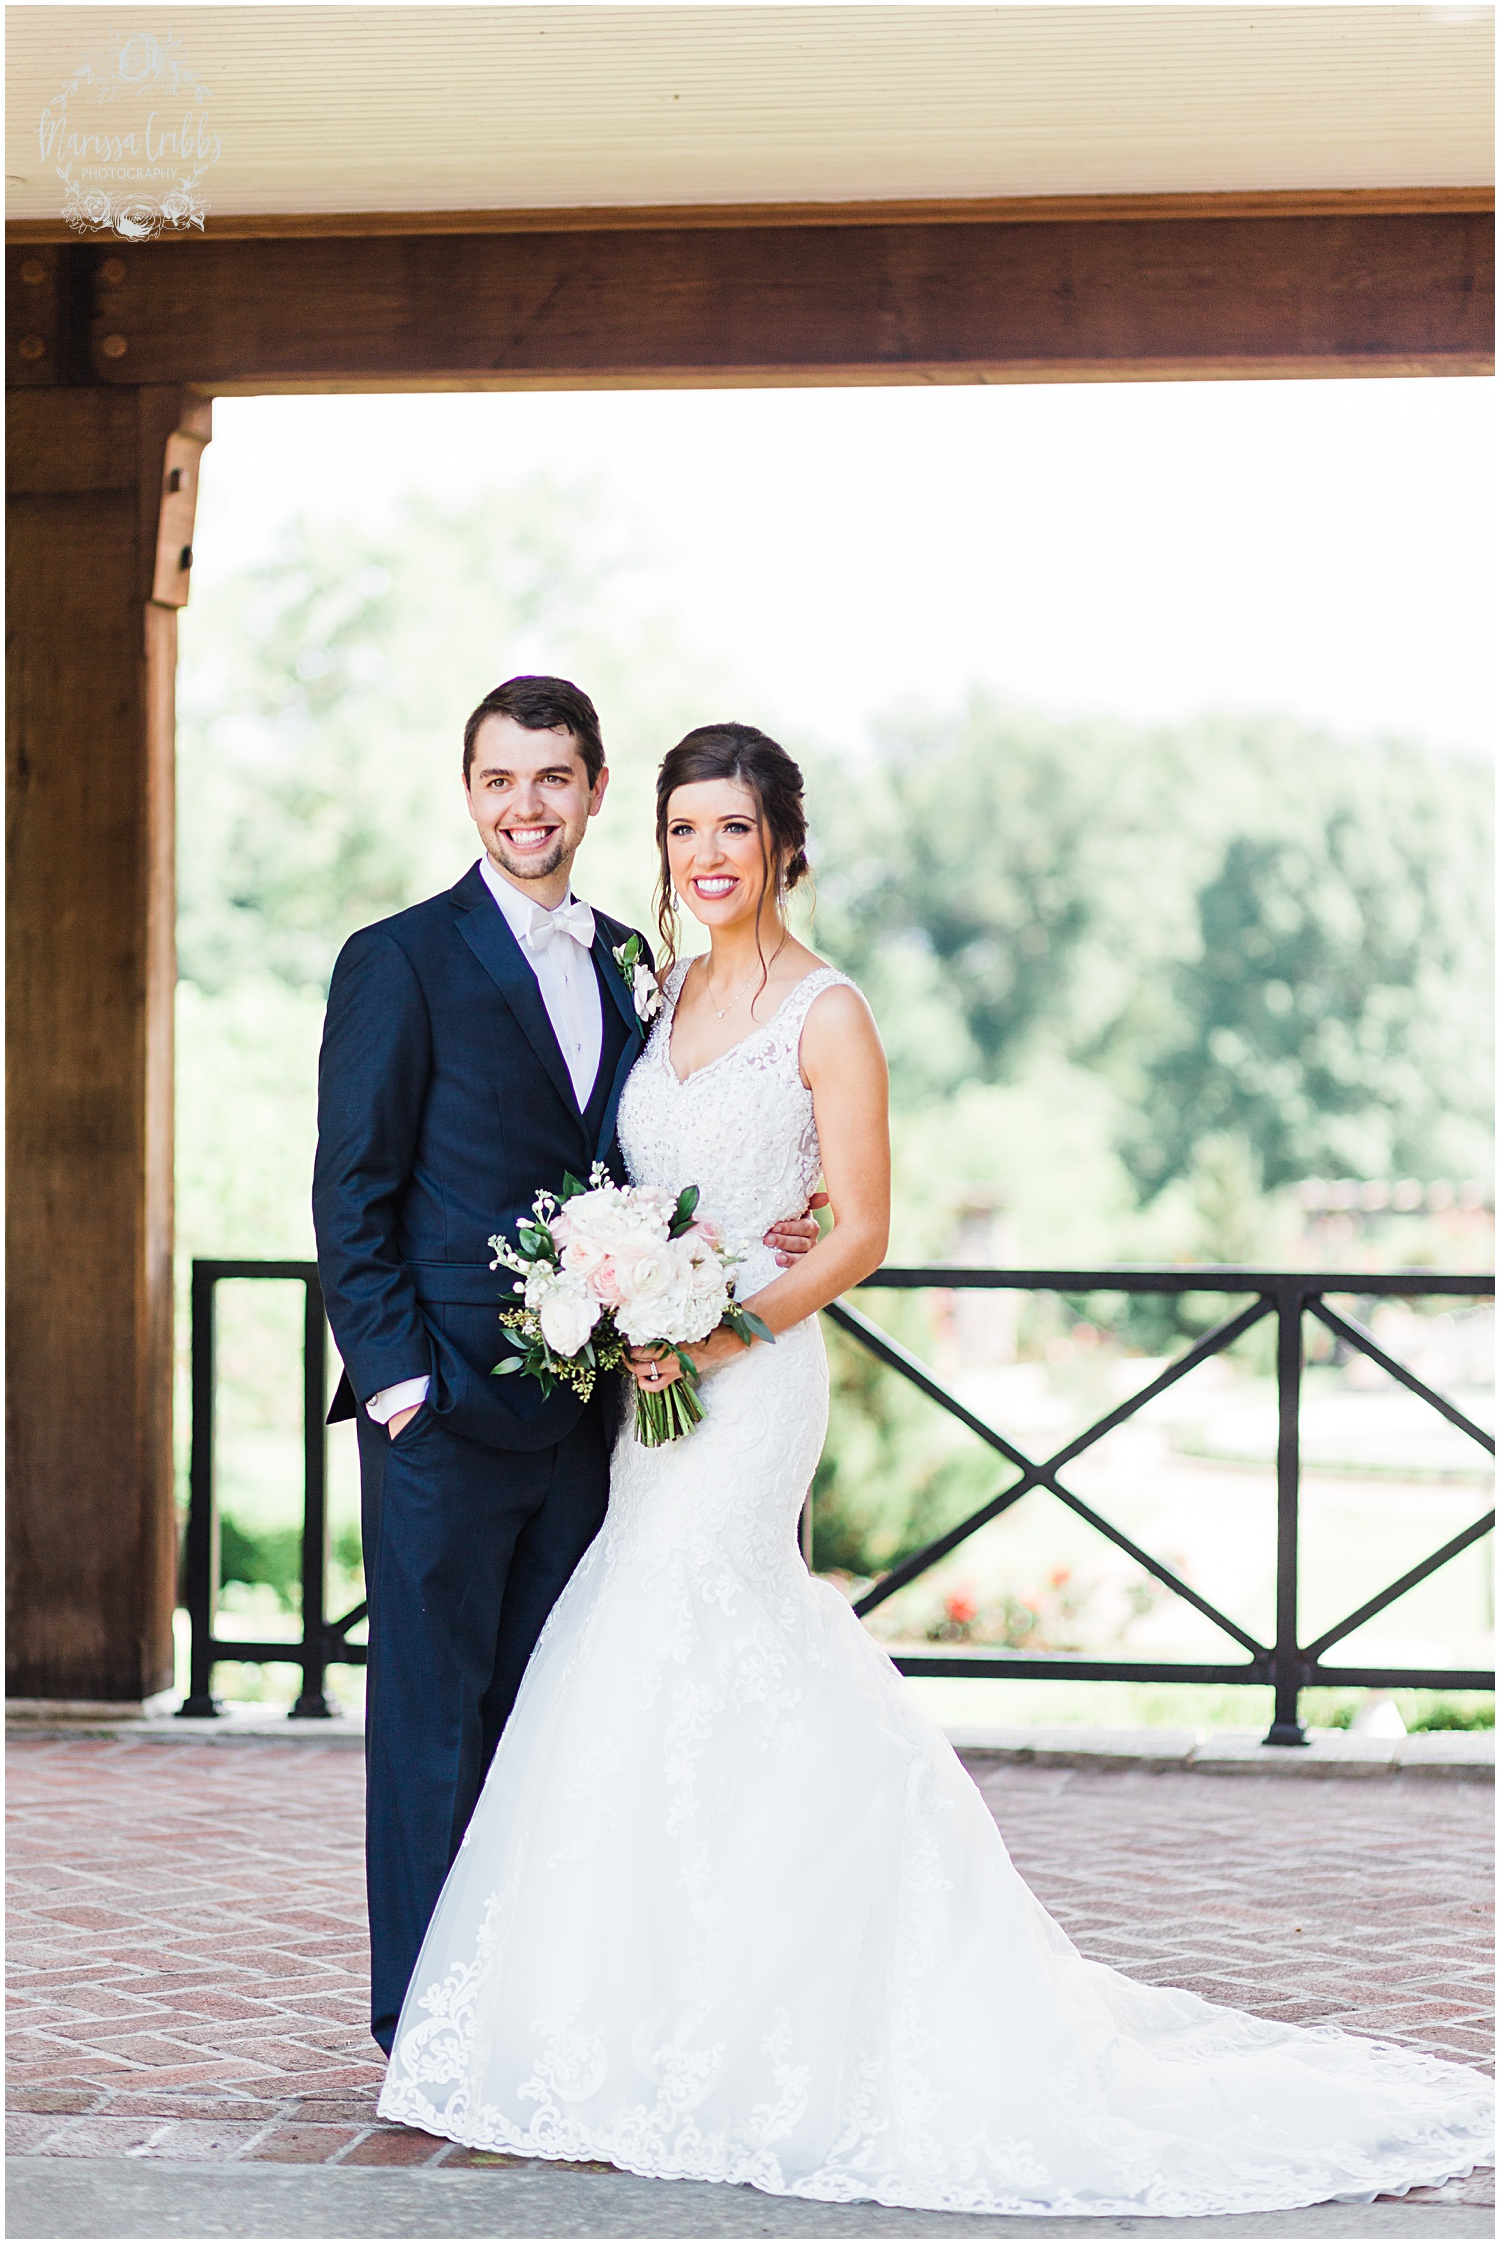 MEGAN & DEREK WEDDING BLOG | MARISSA CRIBBS PHOTOGRAPHY_8172.jpg